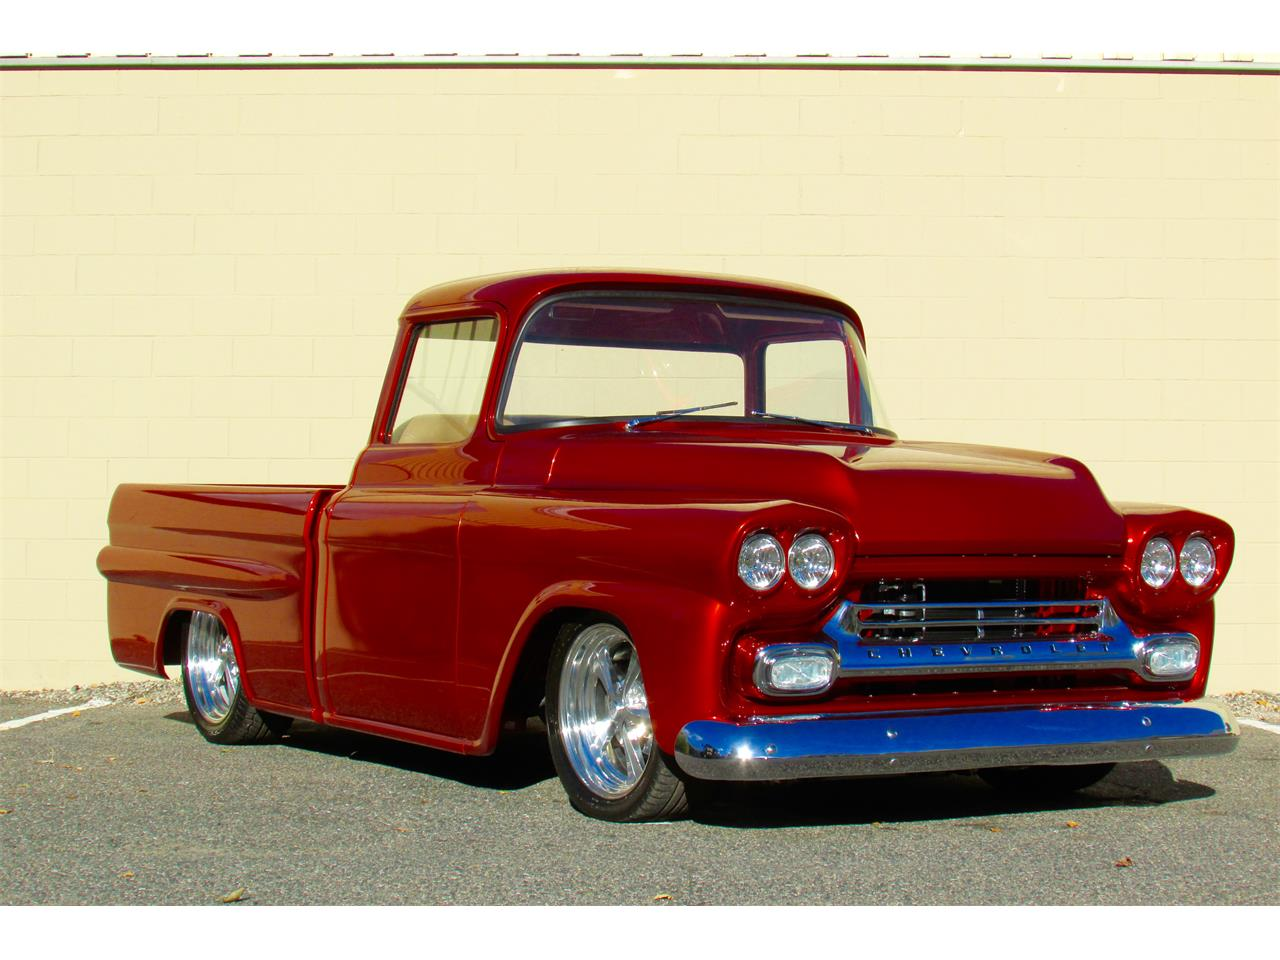 Large Picture of Classic 1959 Fleetside Custom Pickup Truck  located in Framingham Massachusetts - $169,000.00 - JPTV